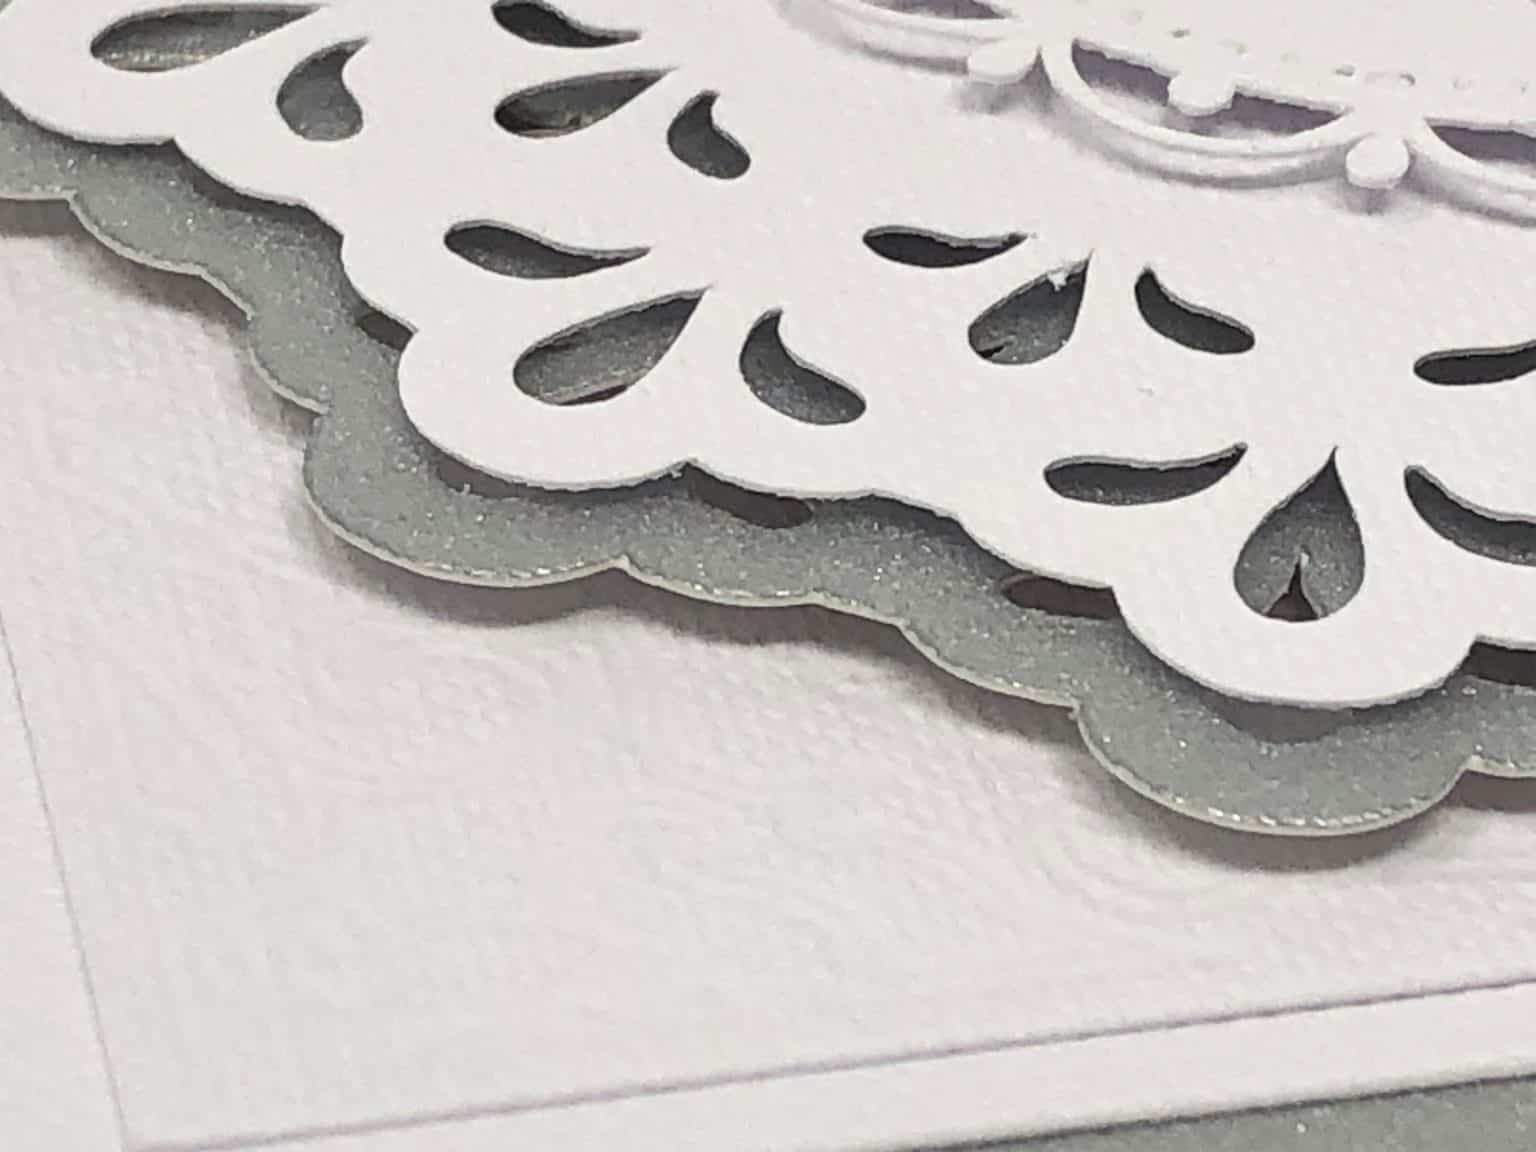 Cricut Anniversary Card picture showing how detailed the cuts are